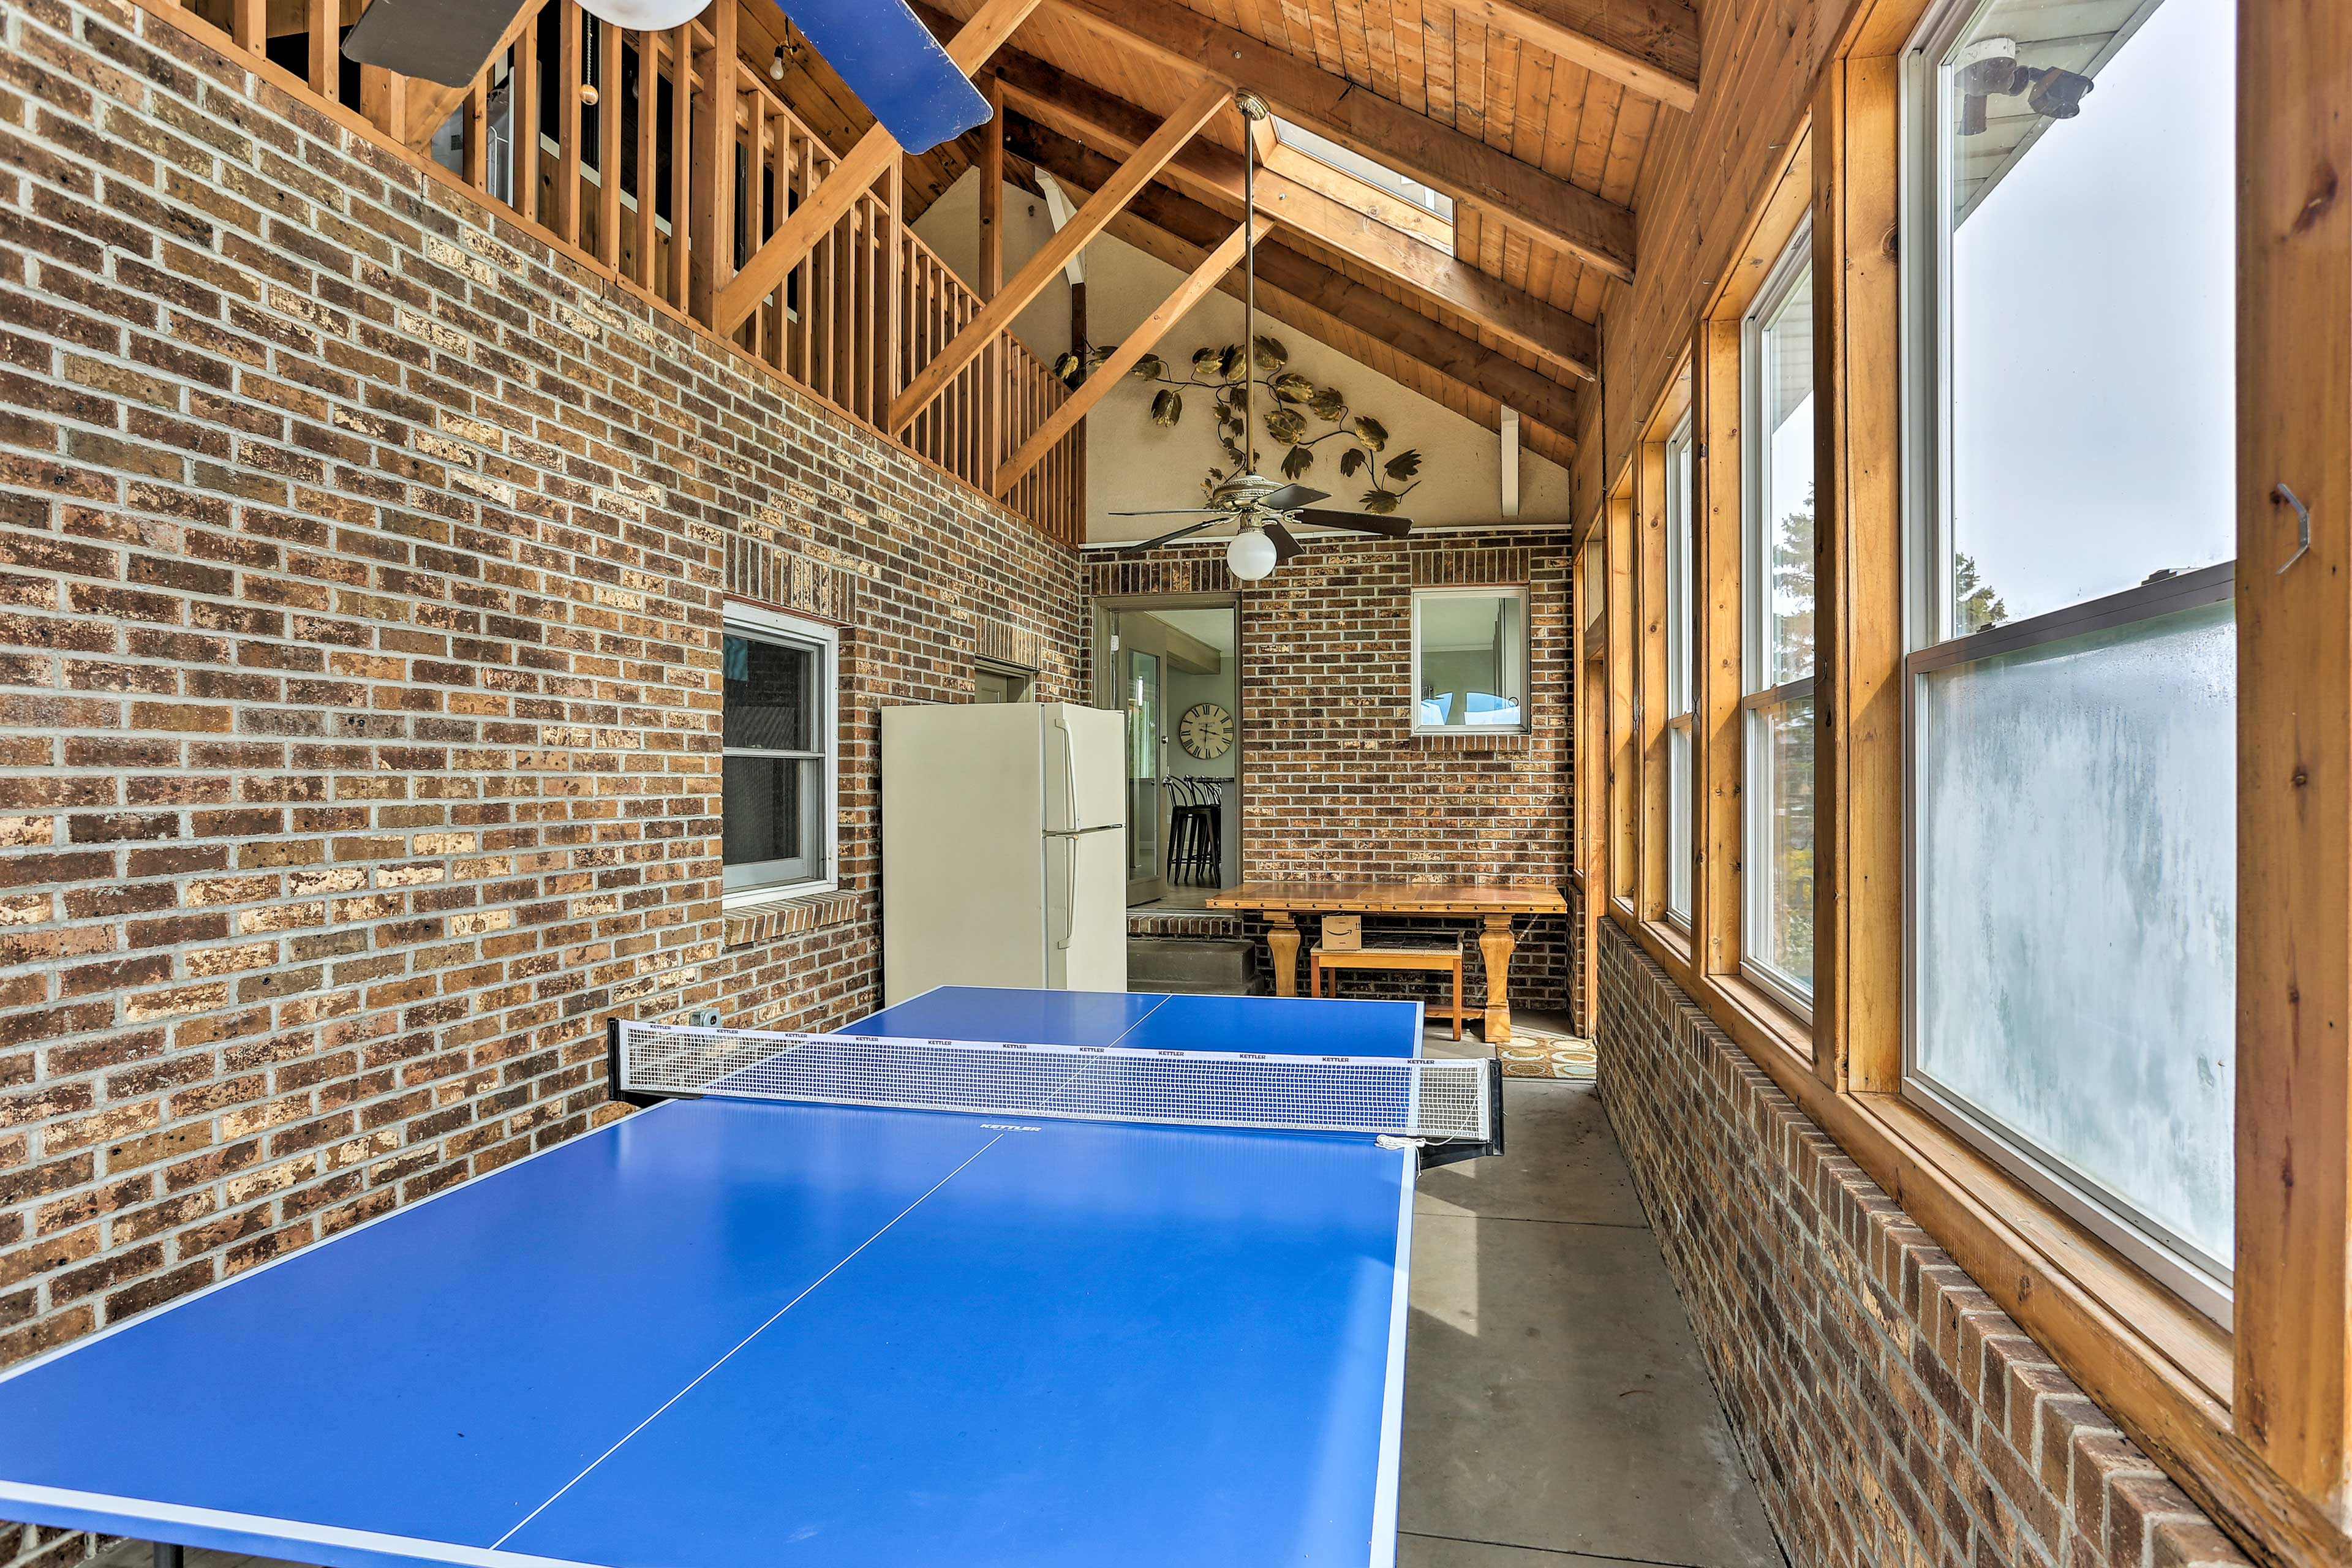 Challenge companions to ping pong games.